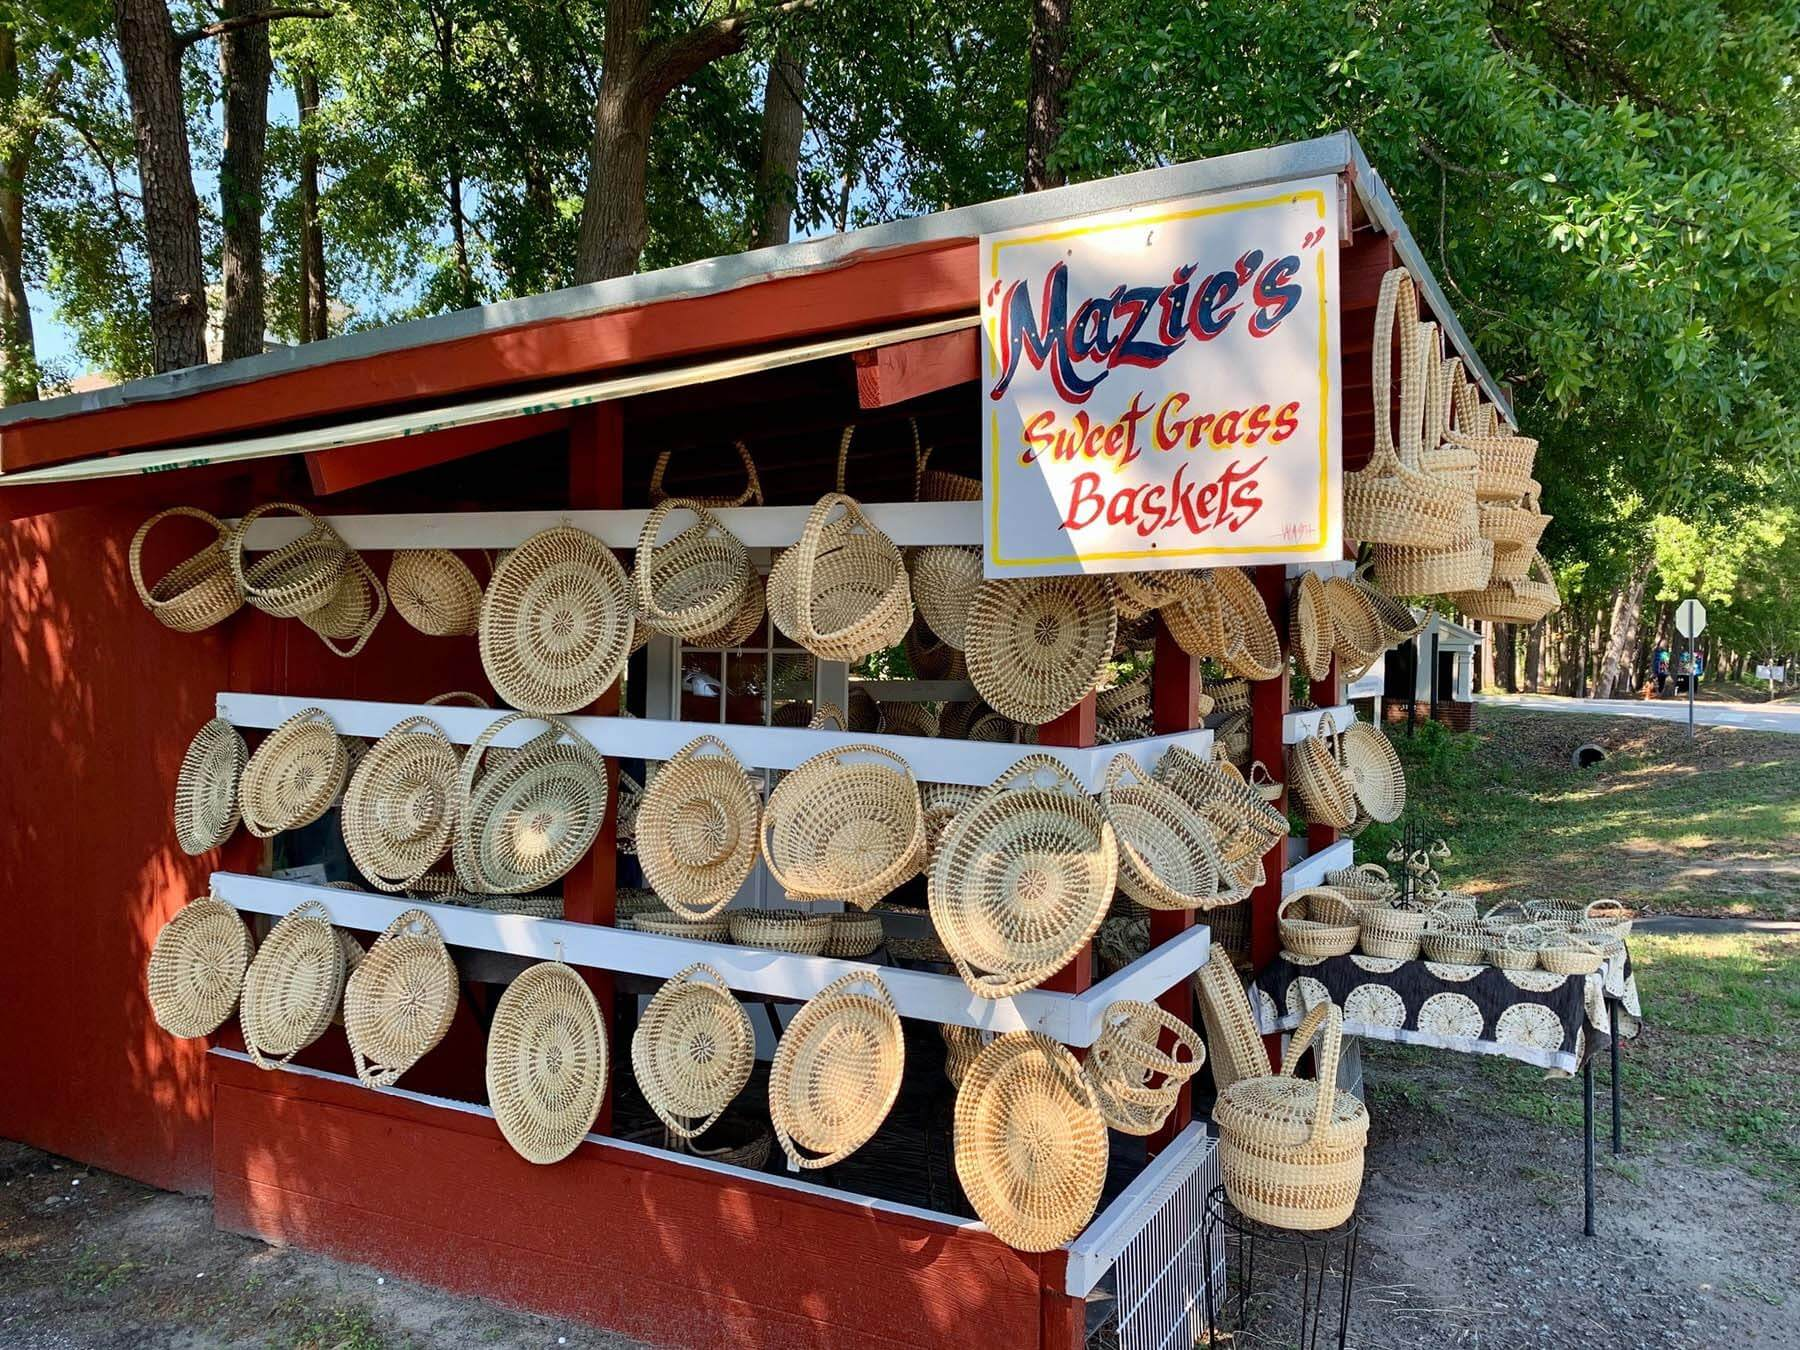 Highway 17 sweetgrass baskets